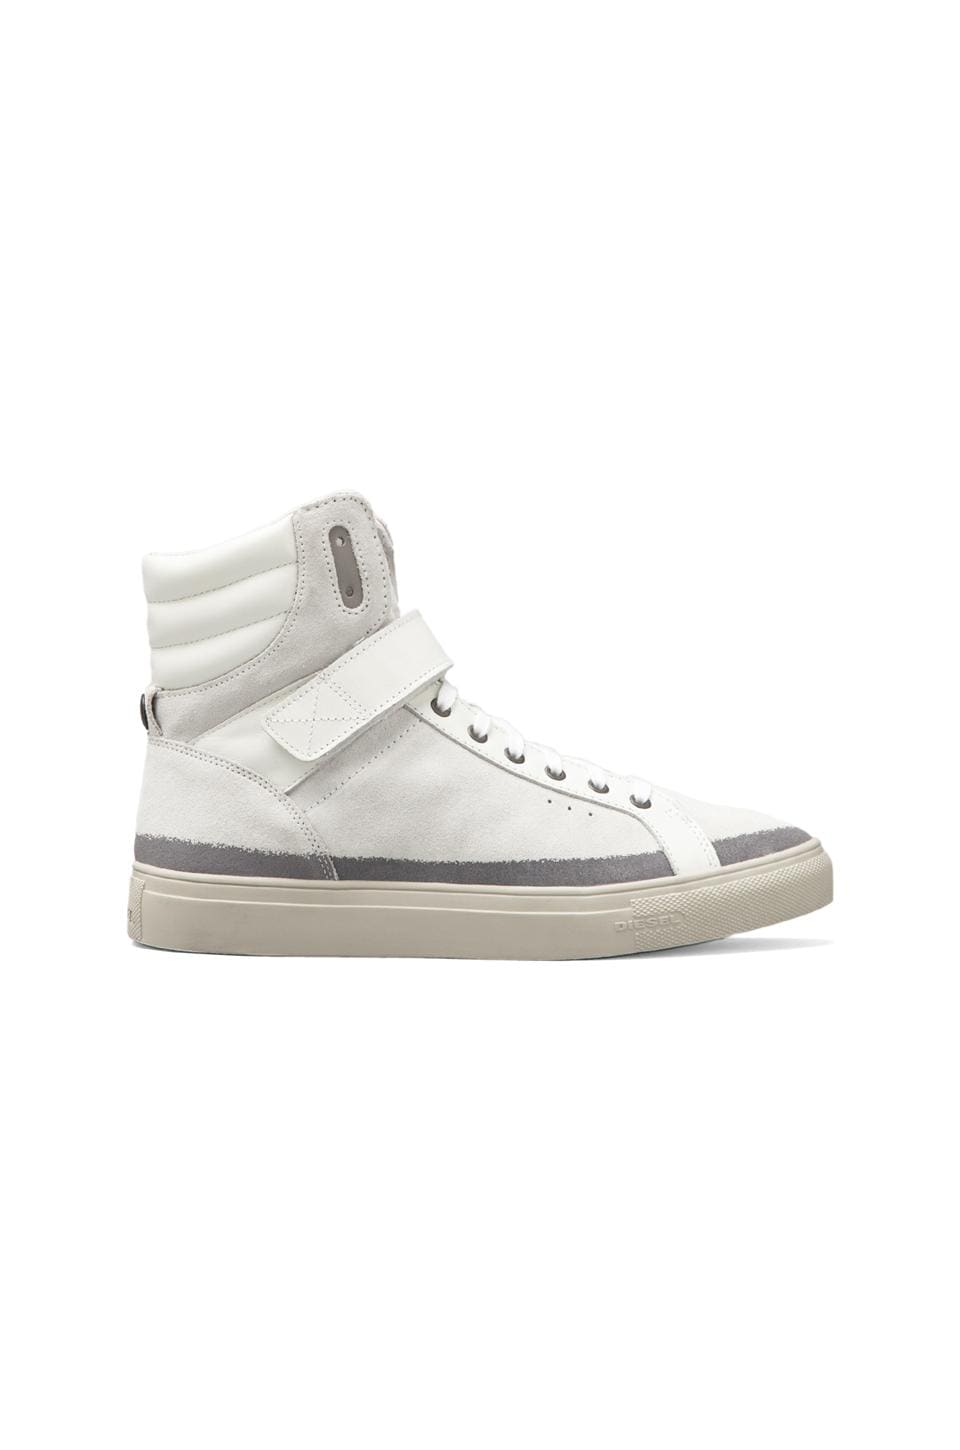 Diesel Moonlight Eclipse Hi-Top Sneaker in White